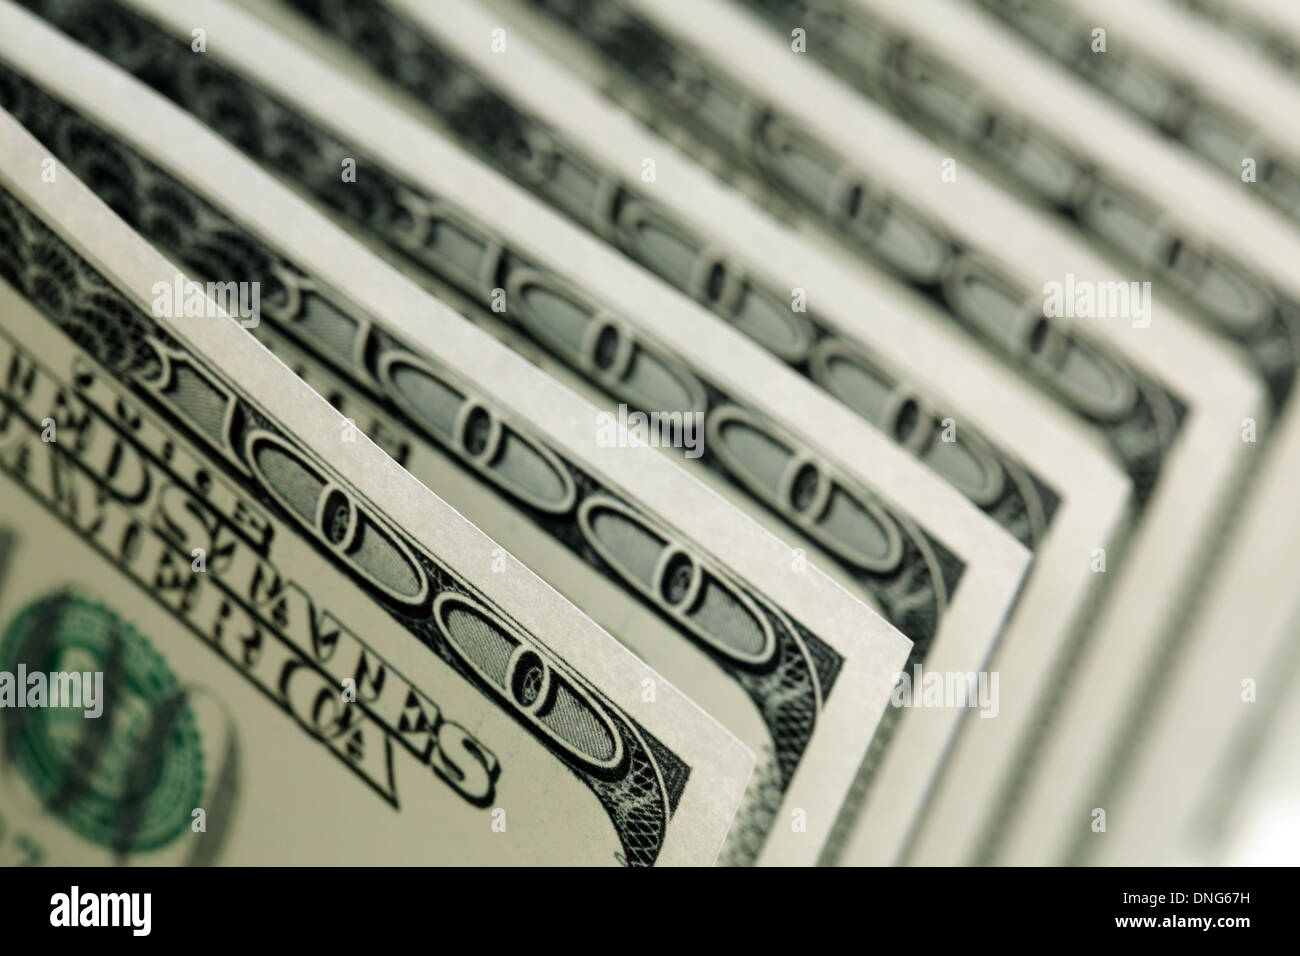 One hundred dollar bills Photo Stock